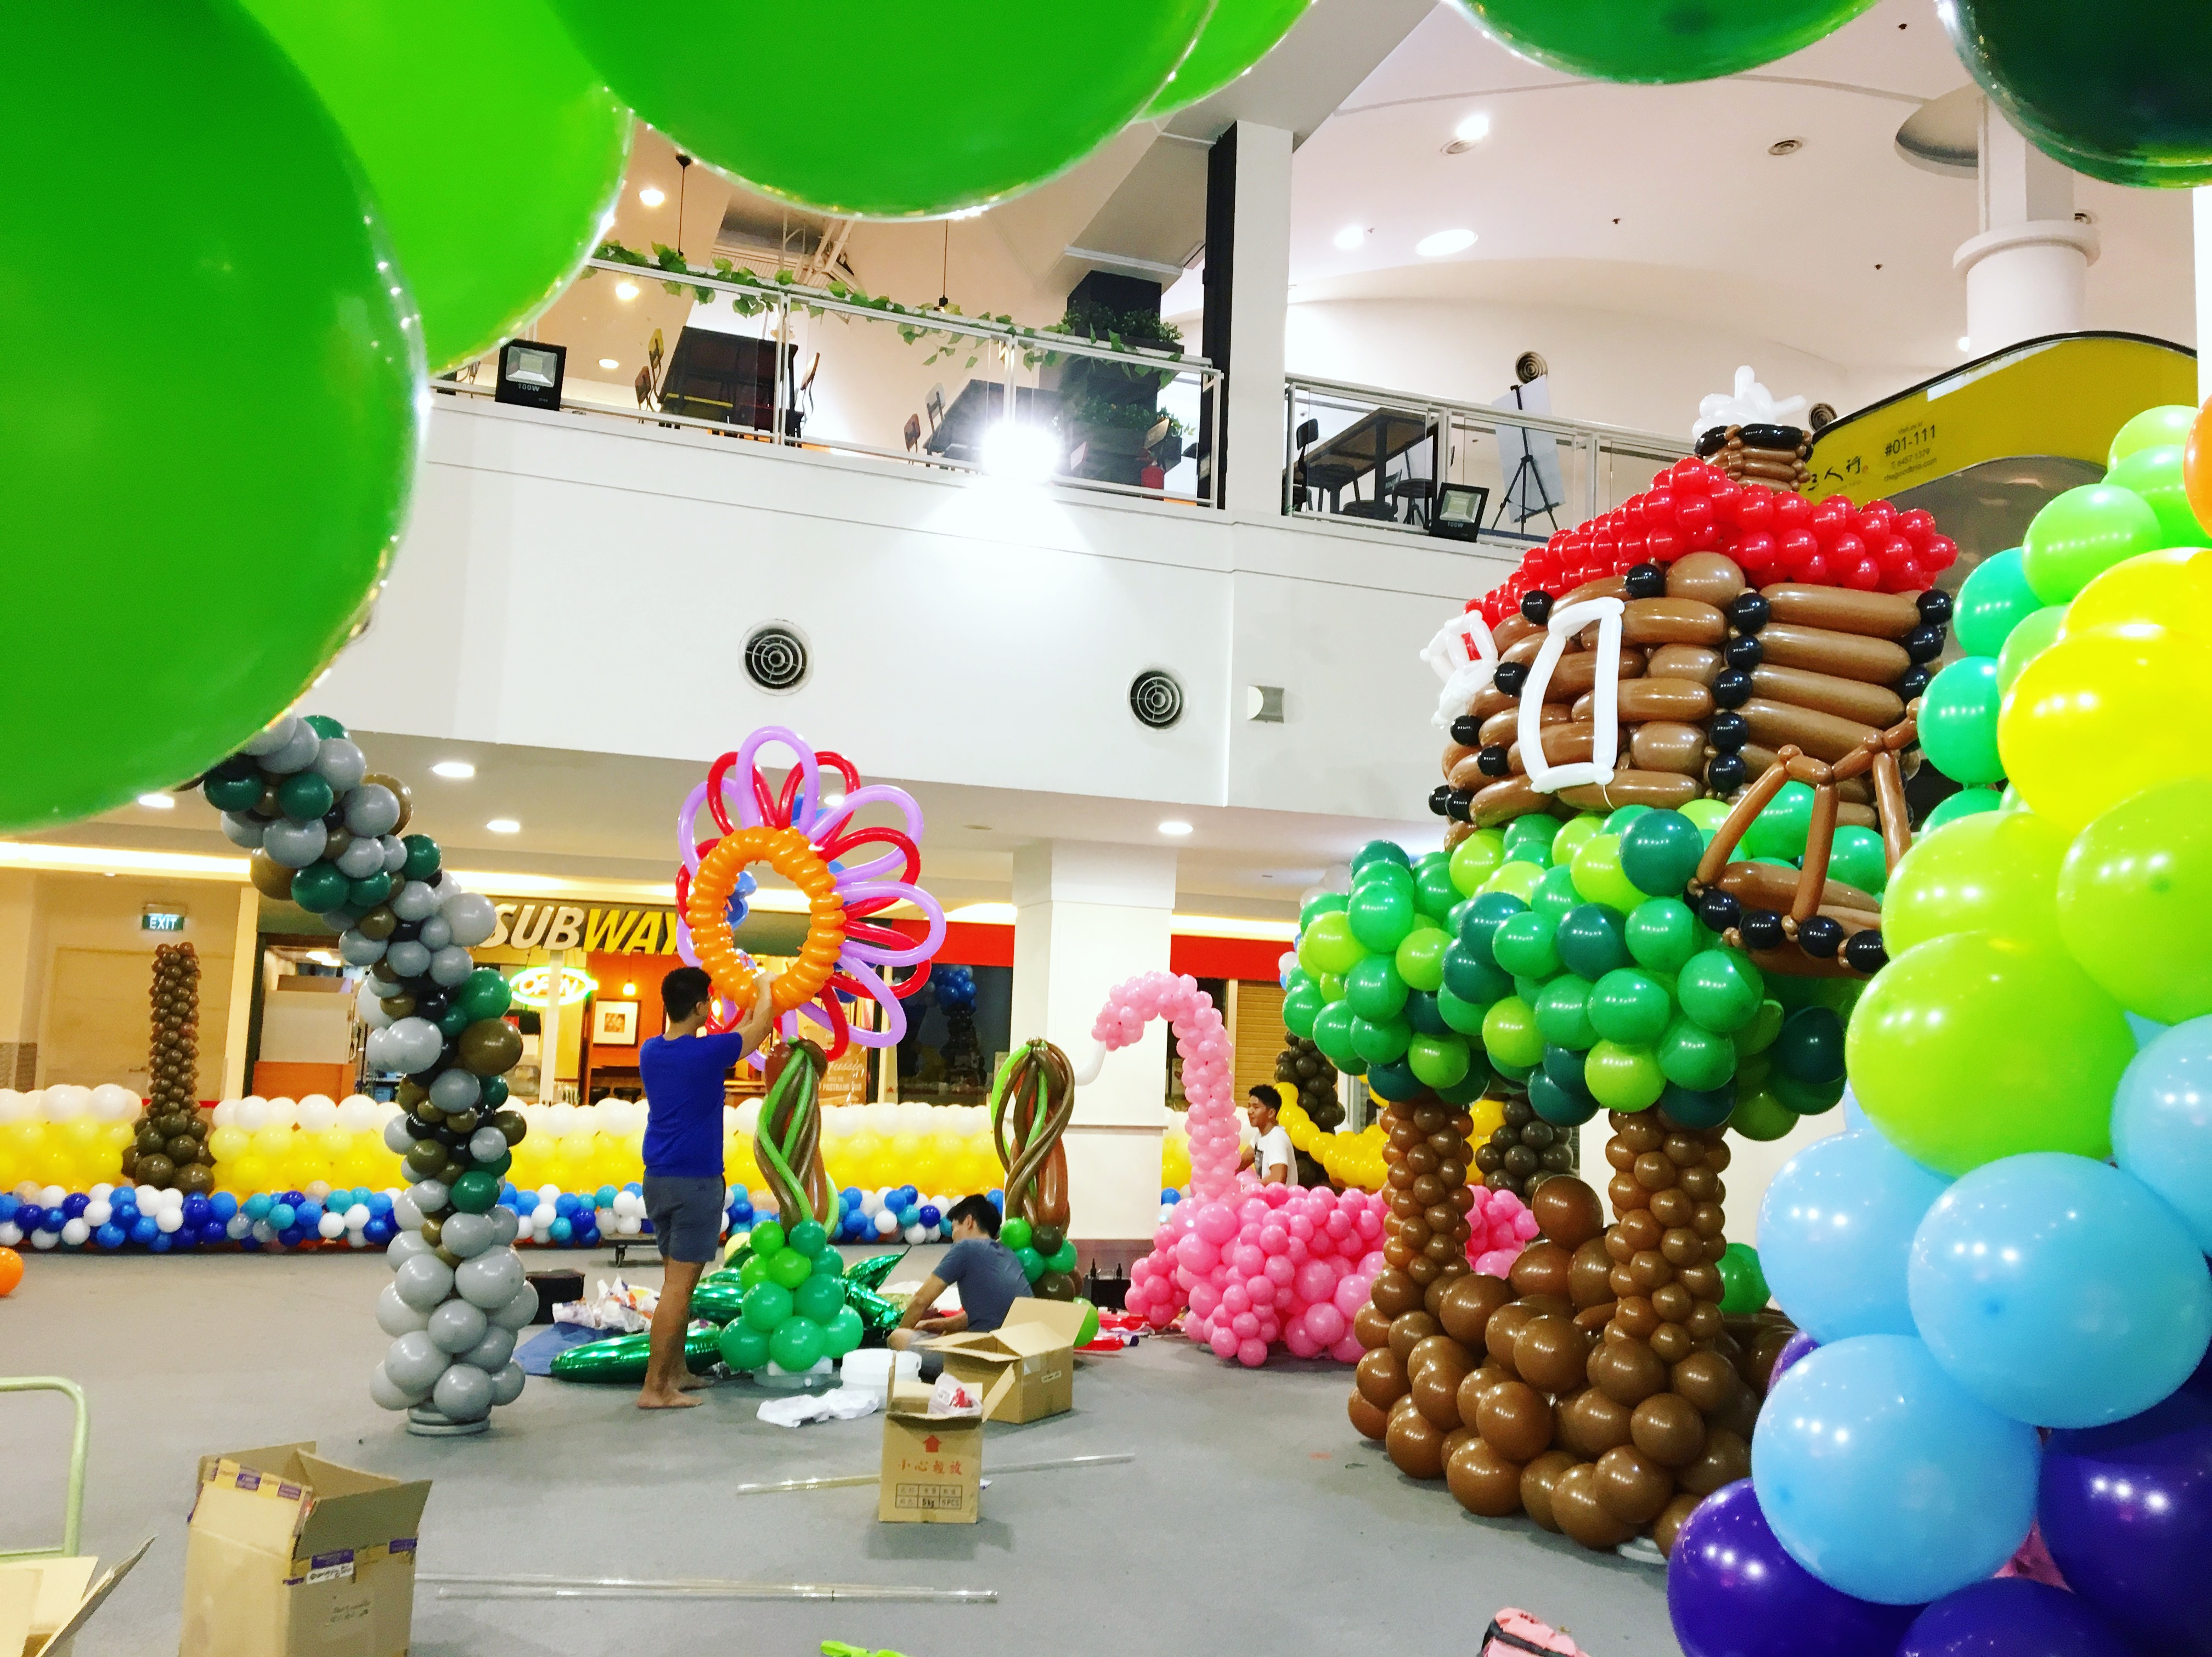 Balloon exhibition set up that balloons